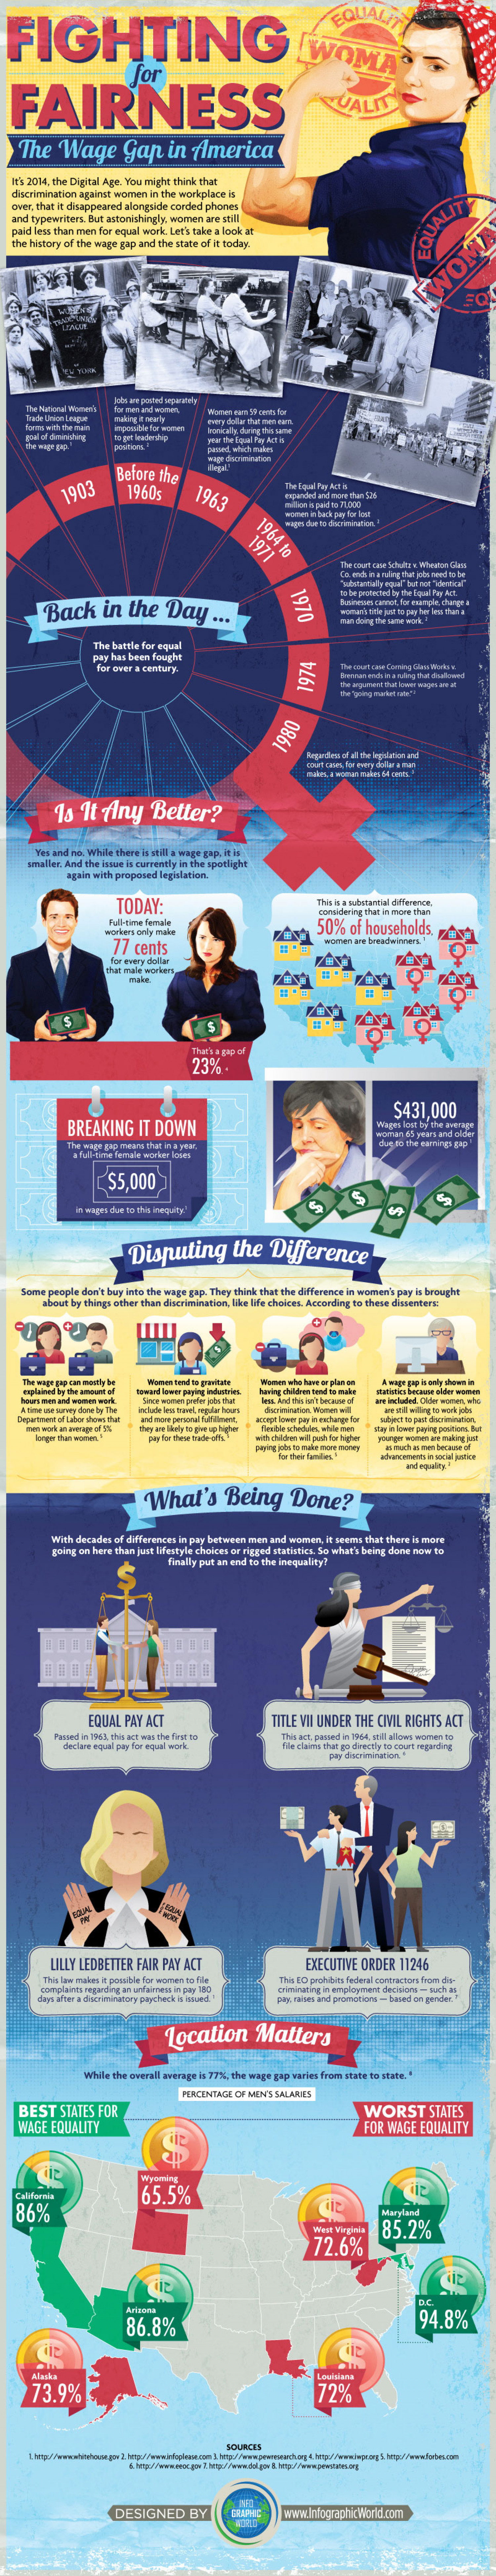 Fighting for Fairness: The Wage Gap in America Infographic